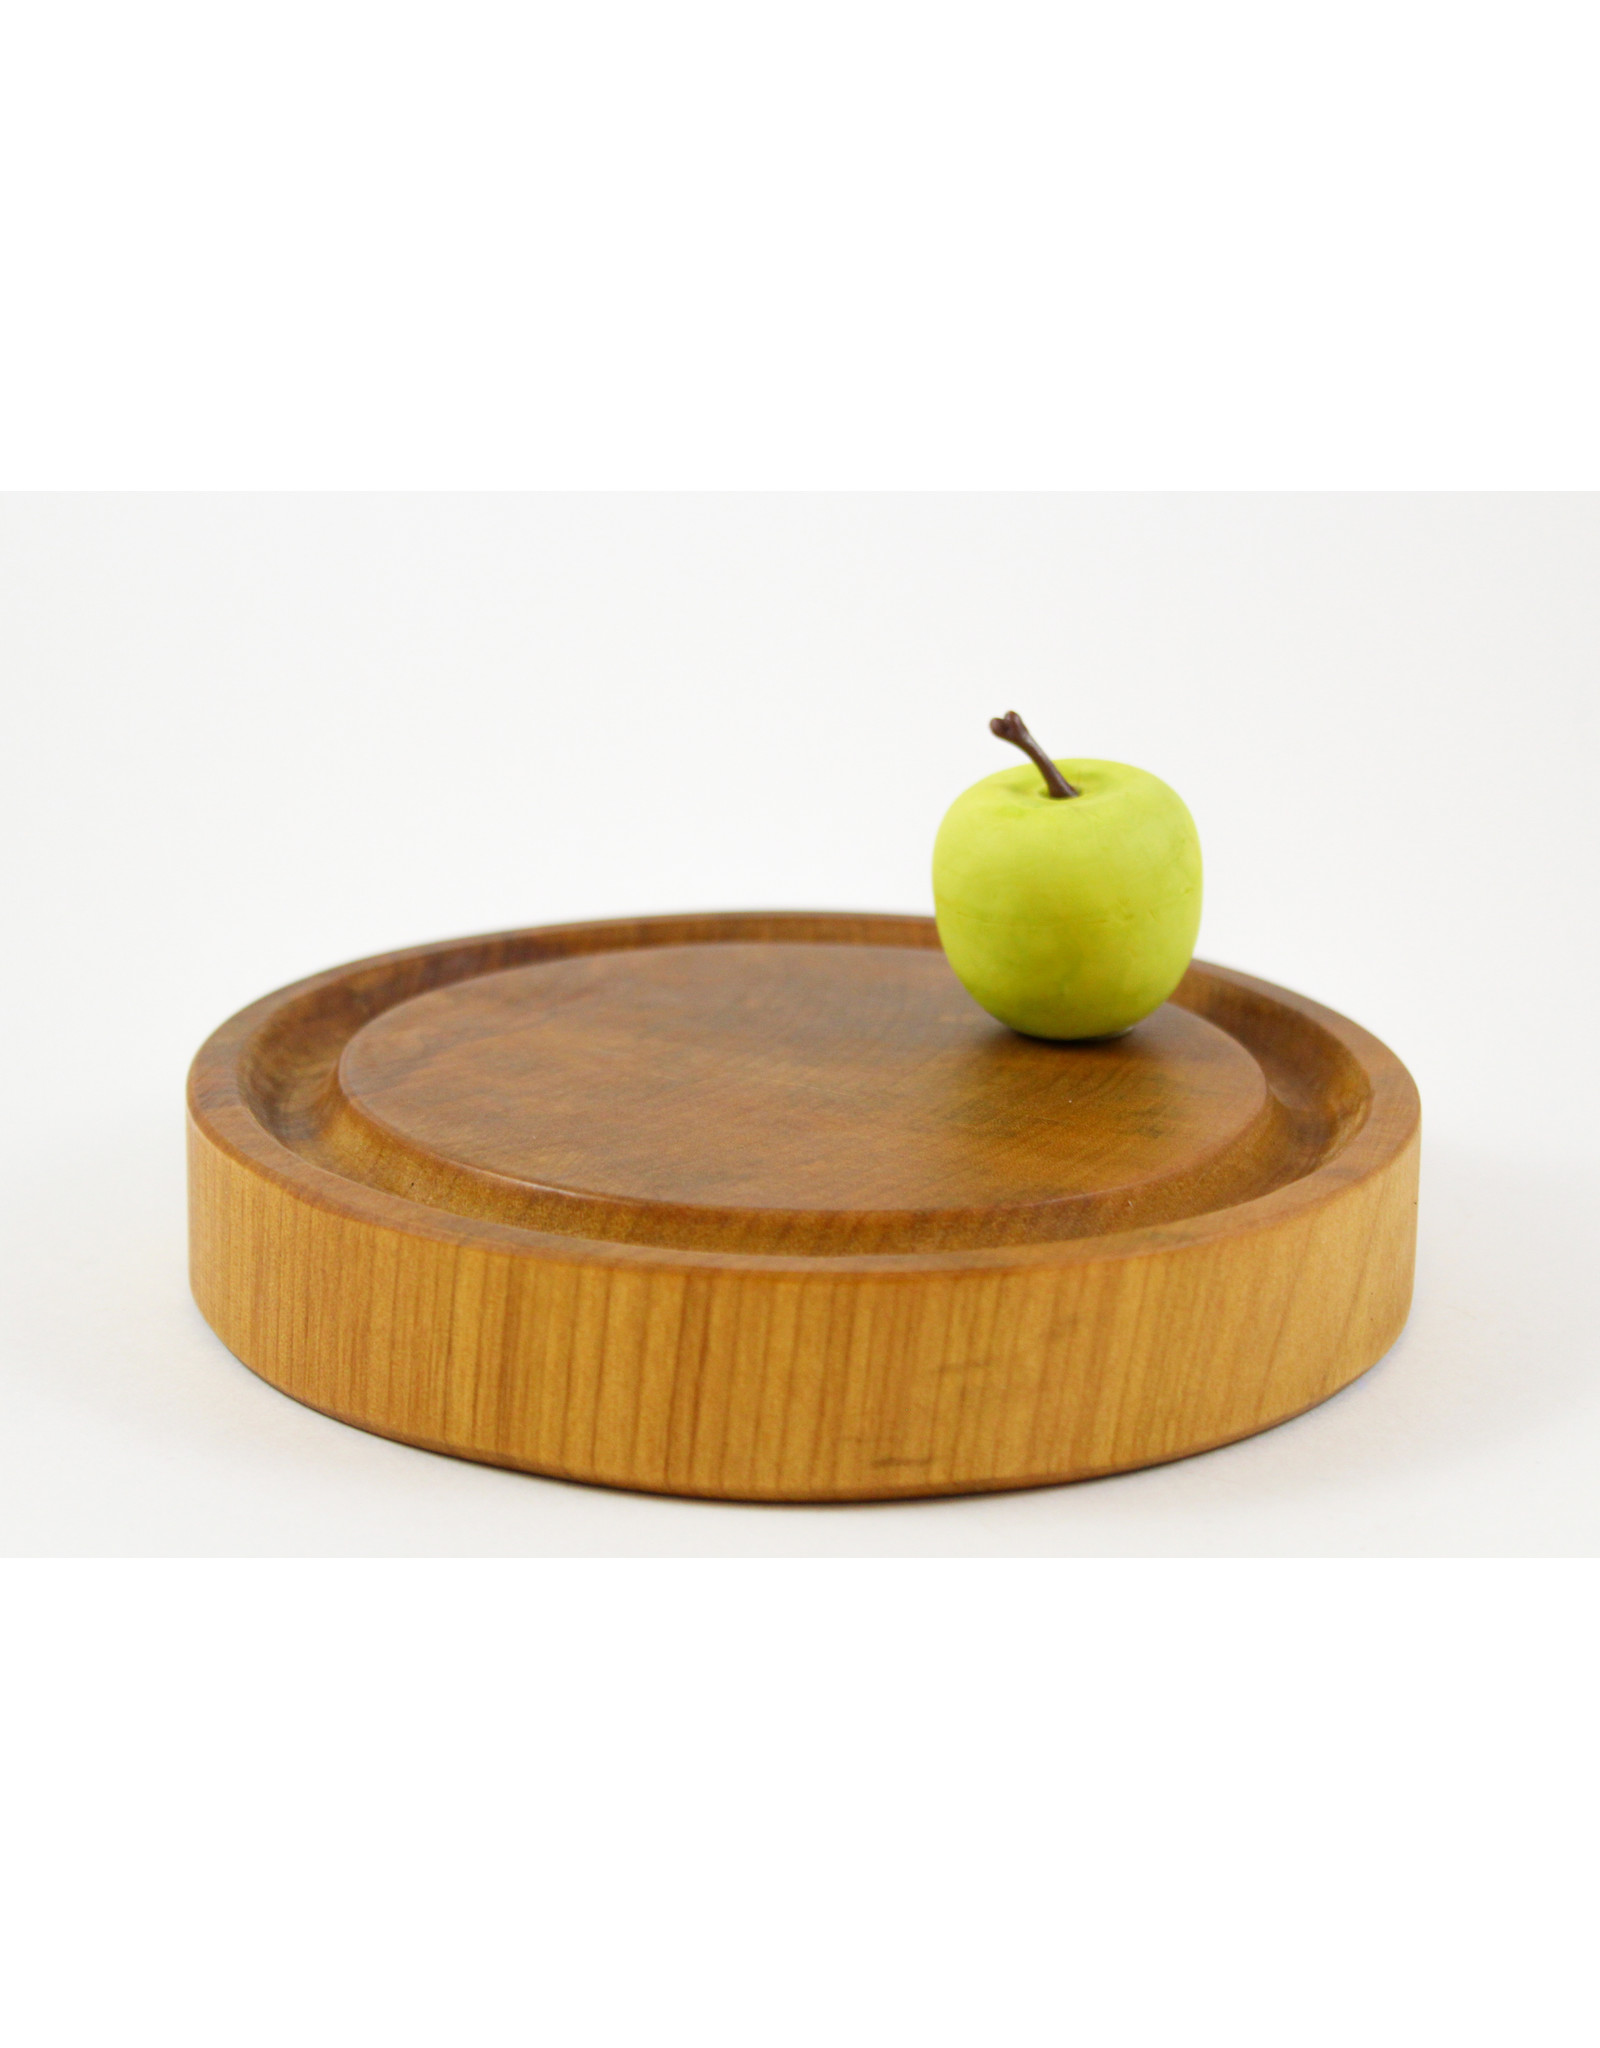 phil jones Small Cutting Board / Plate by The Bowl Guy